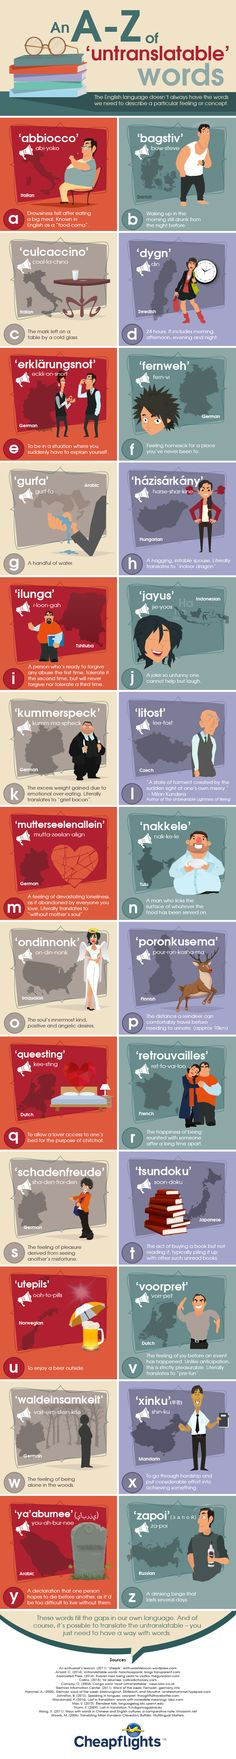 An A-Z of 'Untranslatable' Words #infographic. Re-pinned by #Europass